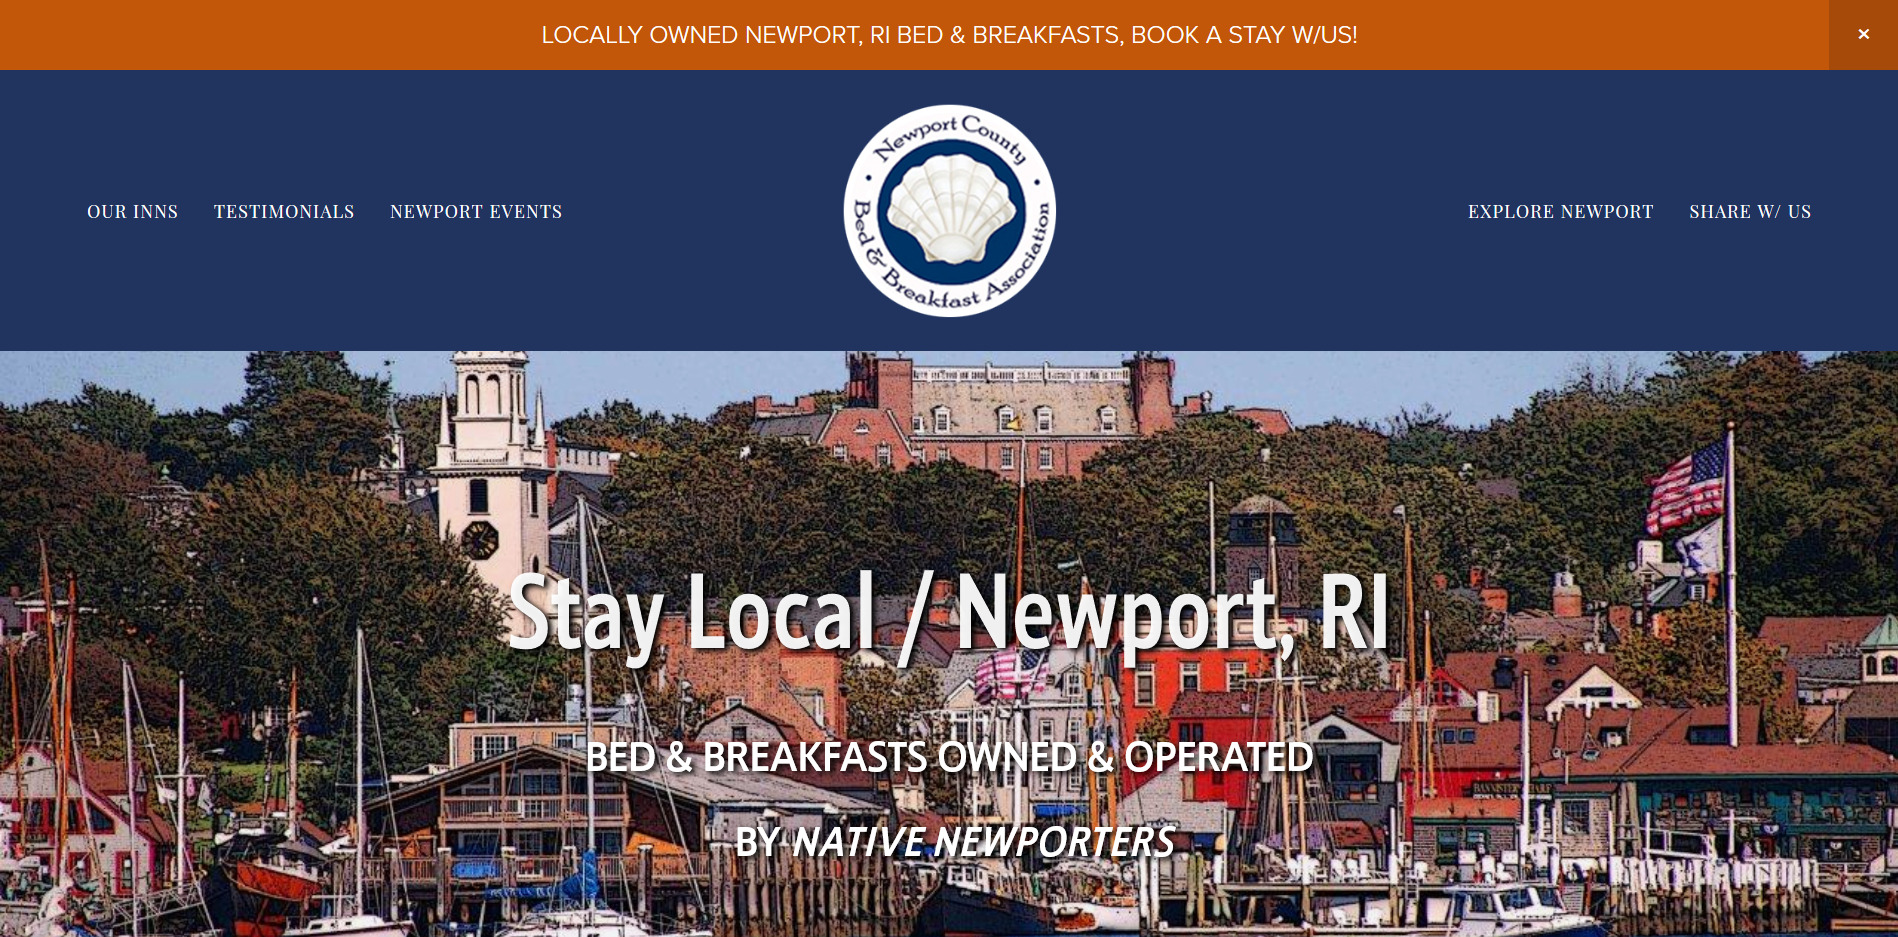 Newport County Bed & Breakfast Association